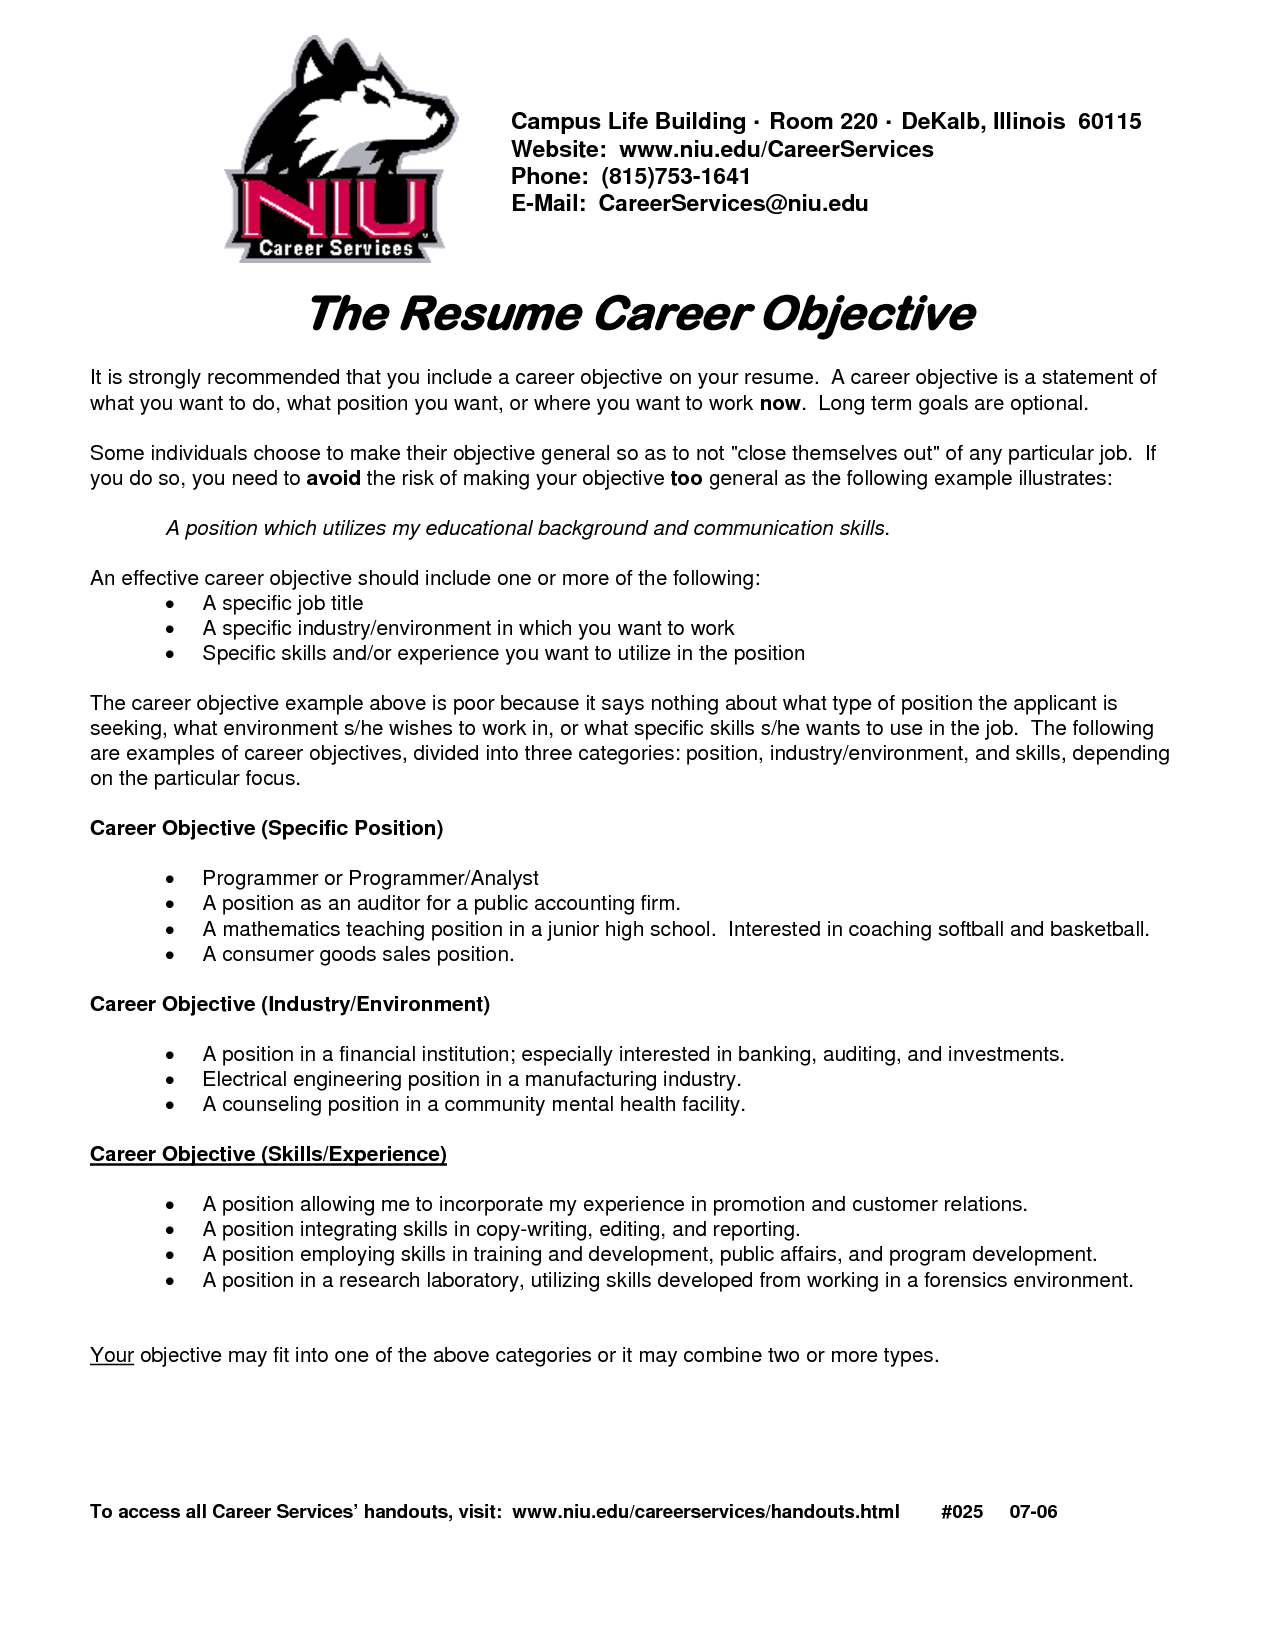 student resume objective examples resume new job - Professional Objective For Resume